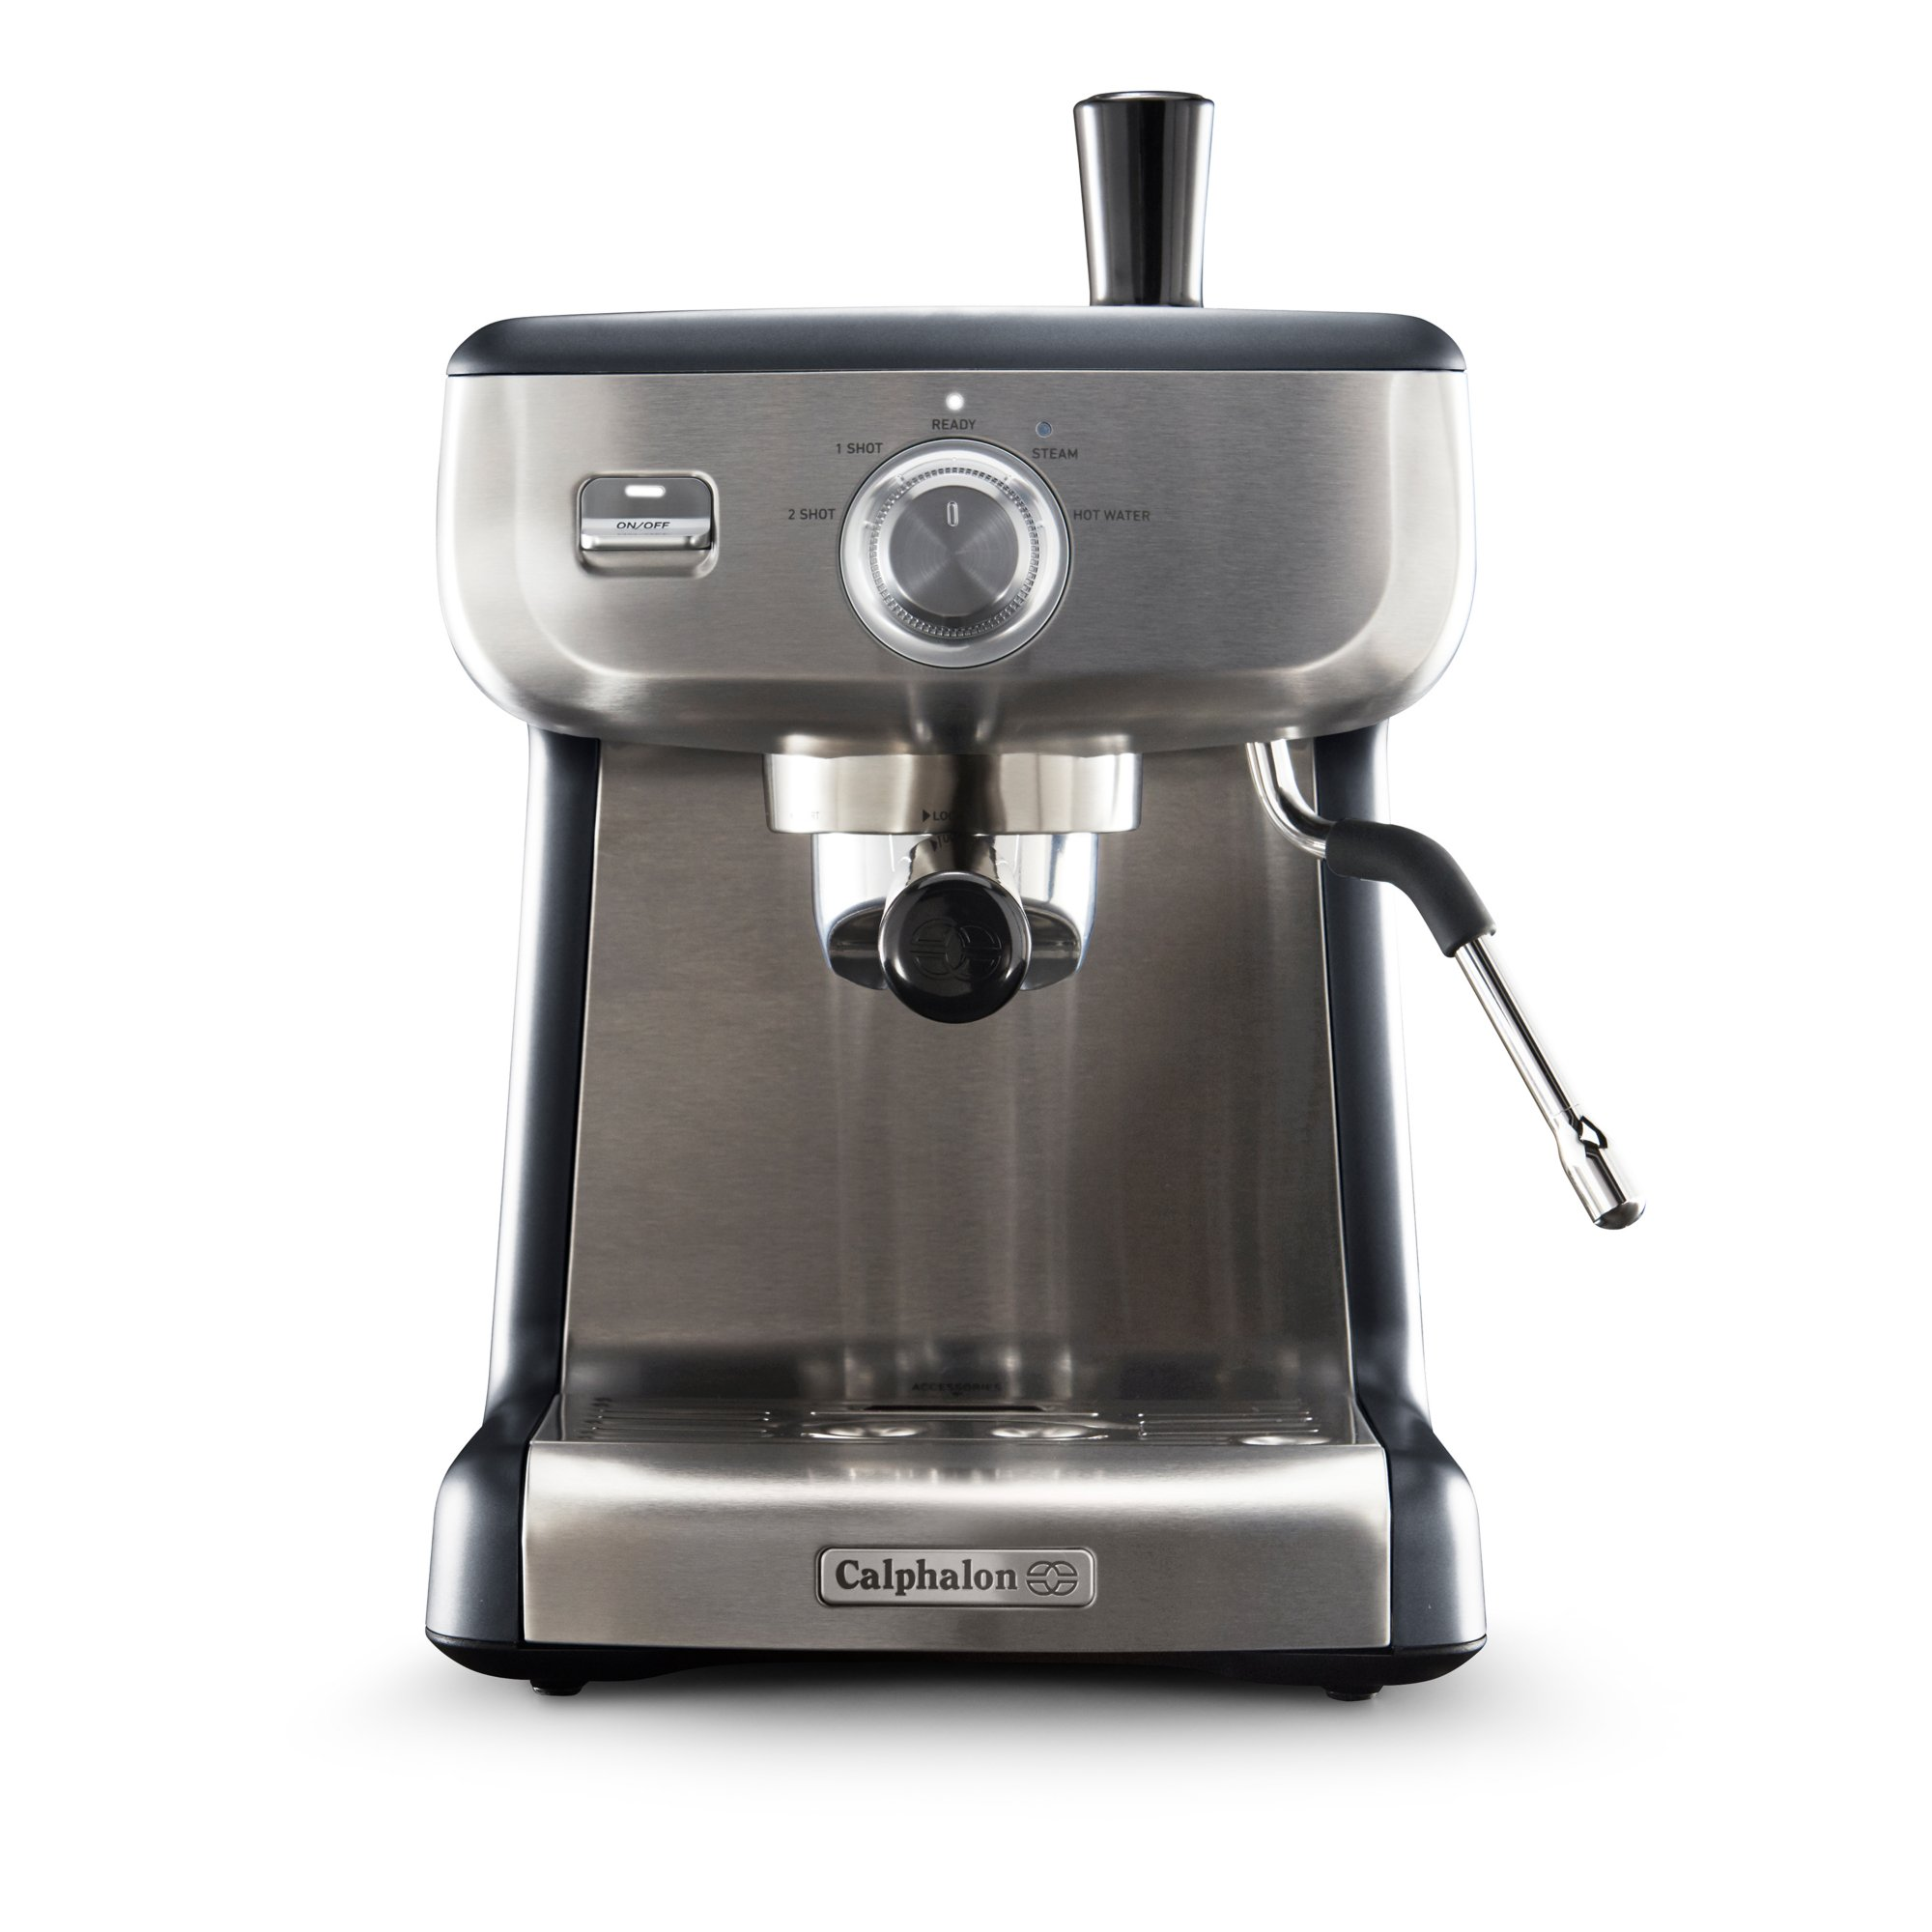 Calphalon Temp iQ Espresso Machine with Steam Wand, Stainless